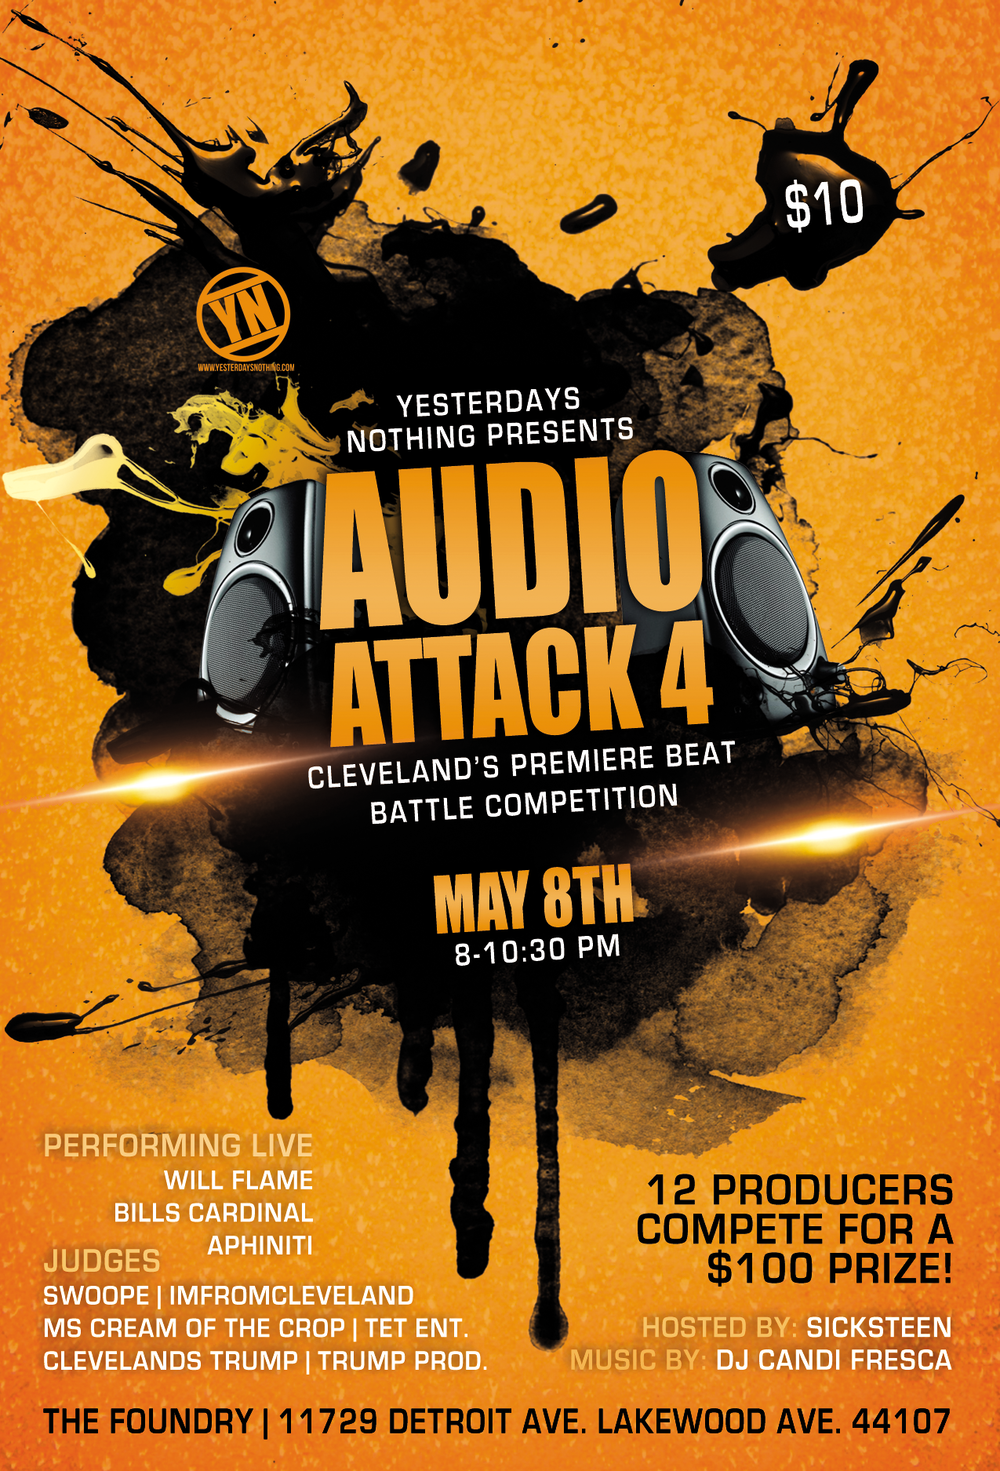 audioattack4 2.png